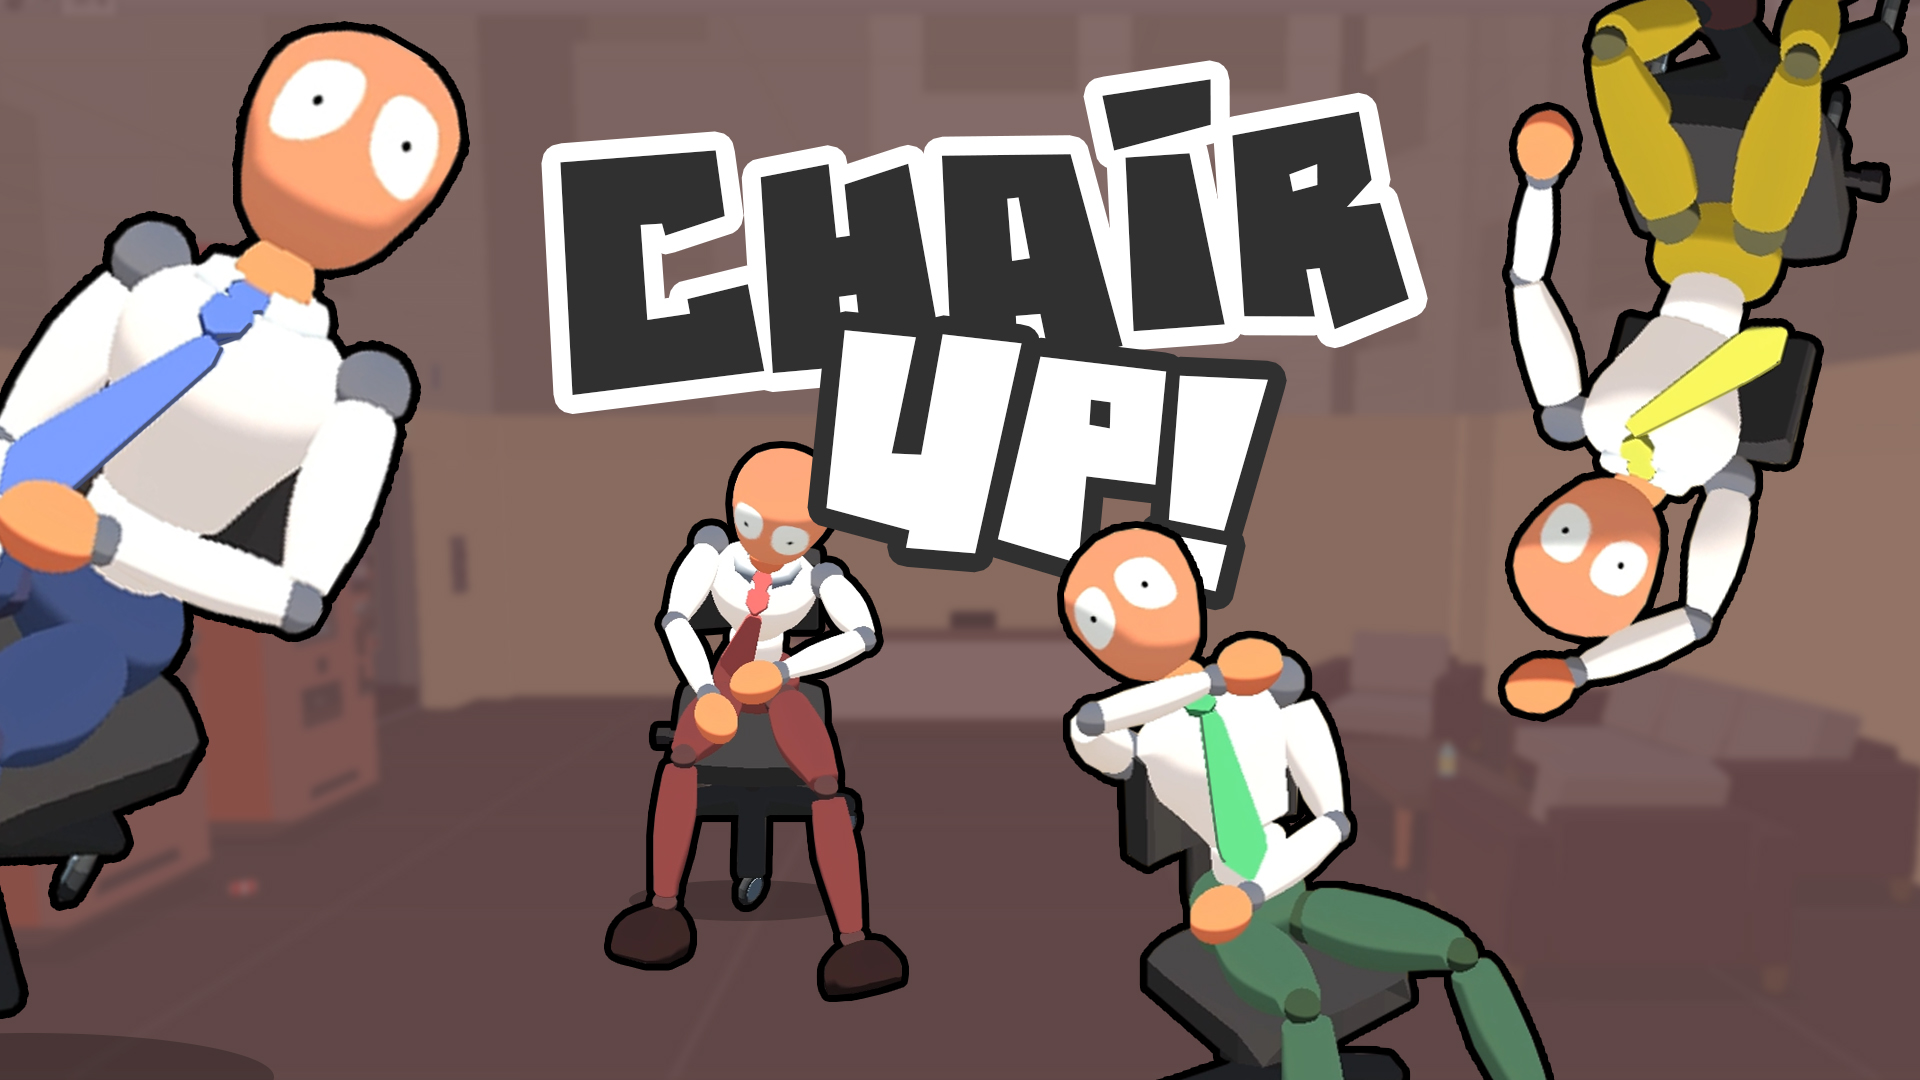 Chair Up!